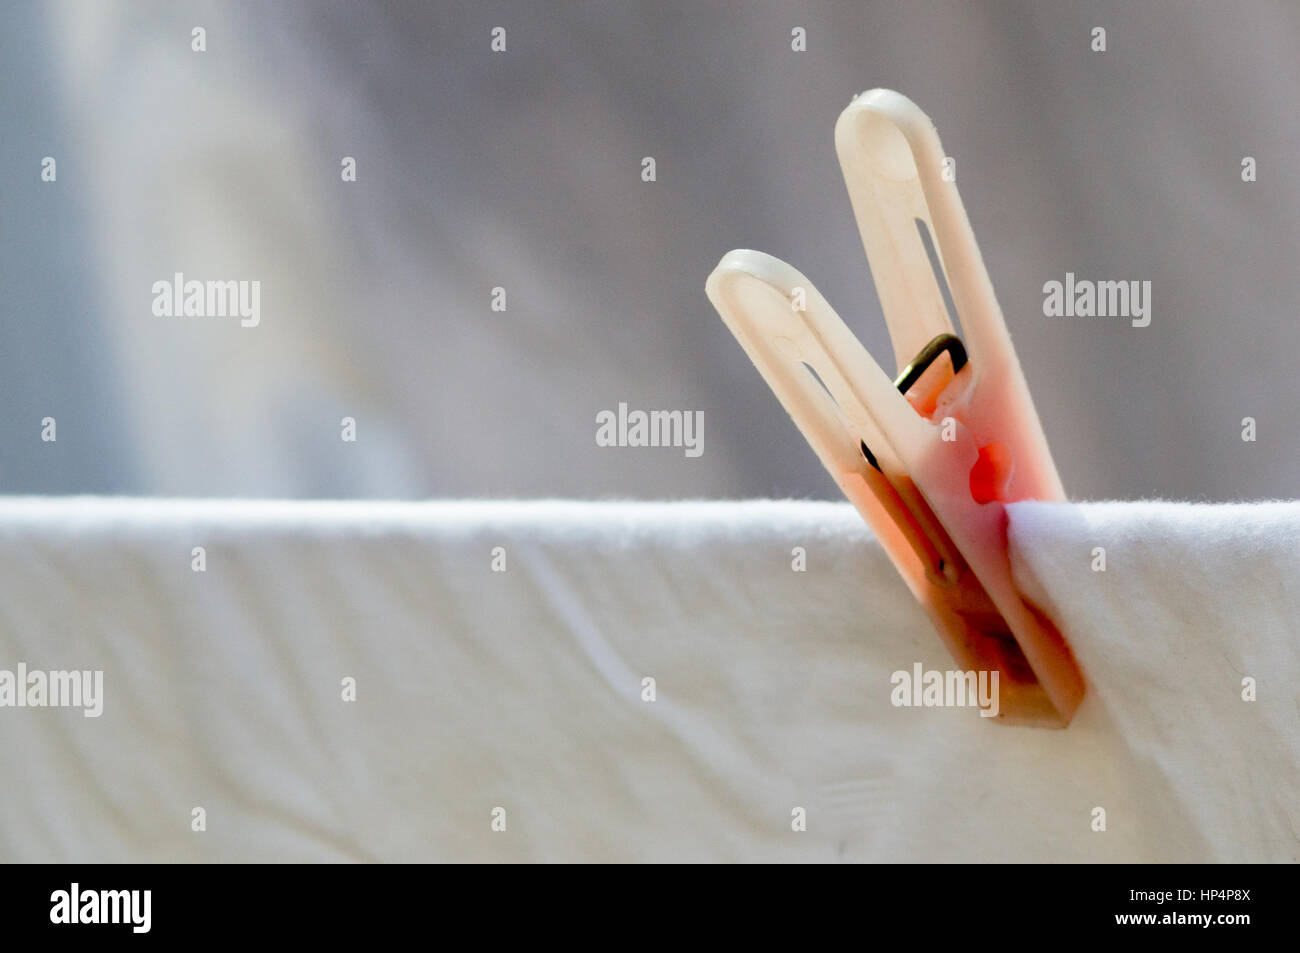 Minimalistic shot of a laundry clip holding a white sheet. Perfect for denoting chores and cleanliness - Stock Image